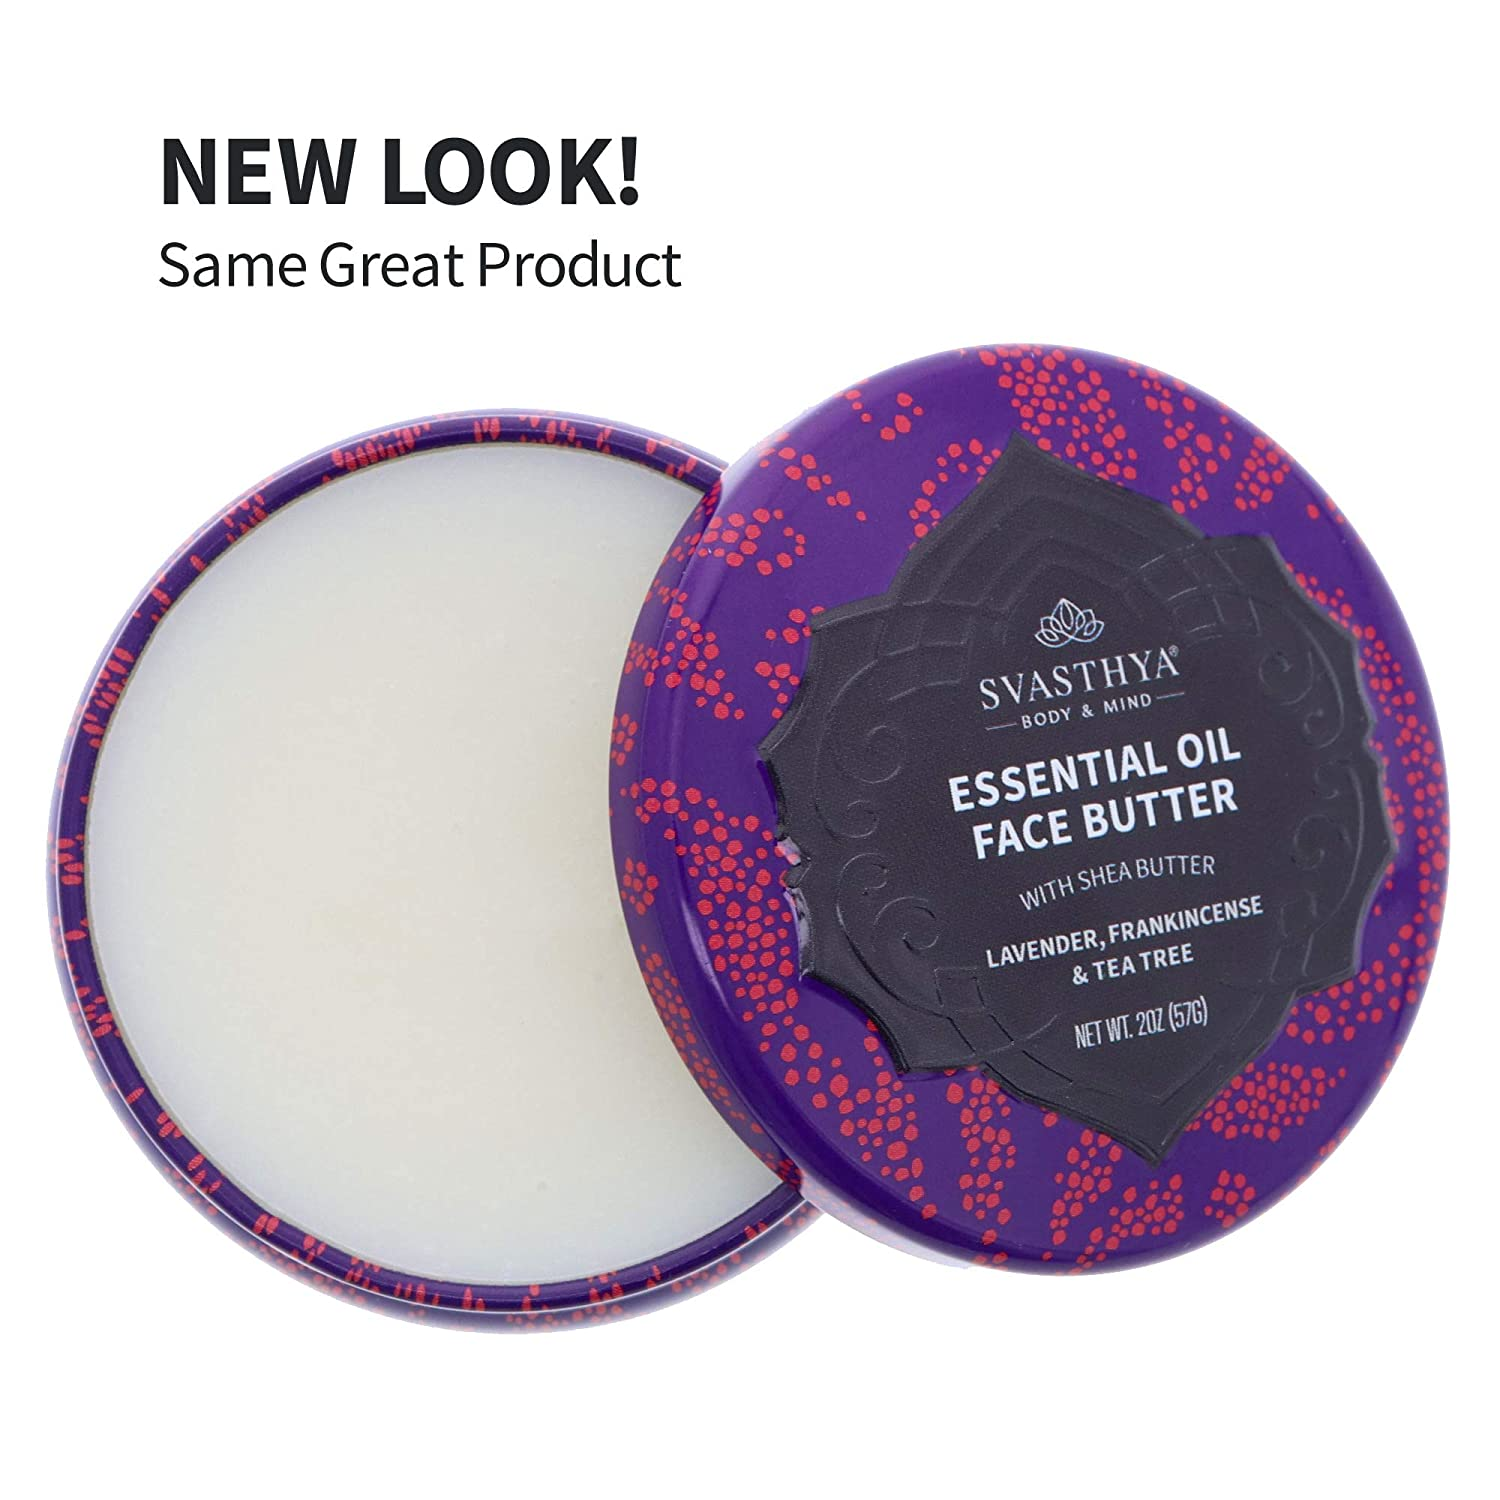 SVASTHYA BODY & MIND Essential Oil Face Butter - Naturally Nurtures Skin & Restores Complexion, Has Shea Butter, Coconut, Argan & Grapeseed Oil, Made In The USA, (2 oz)